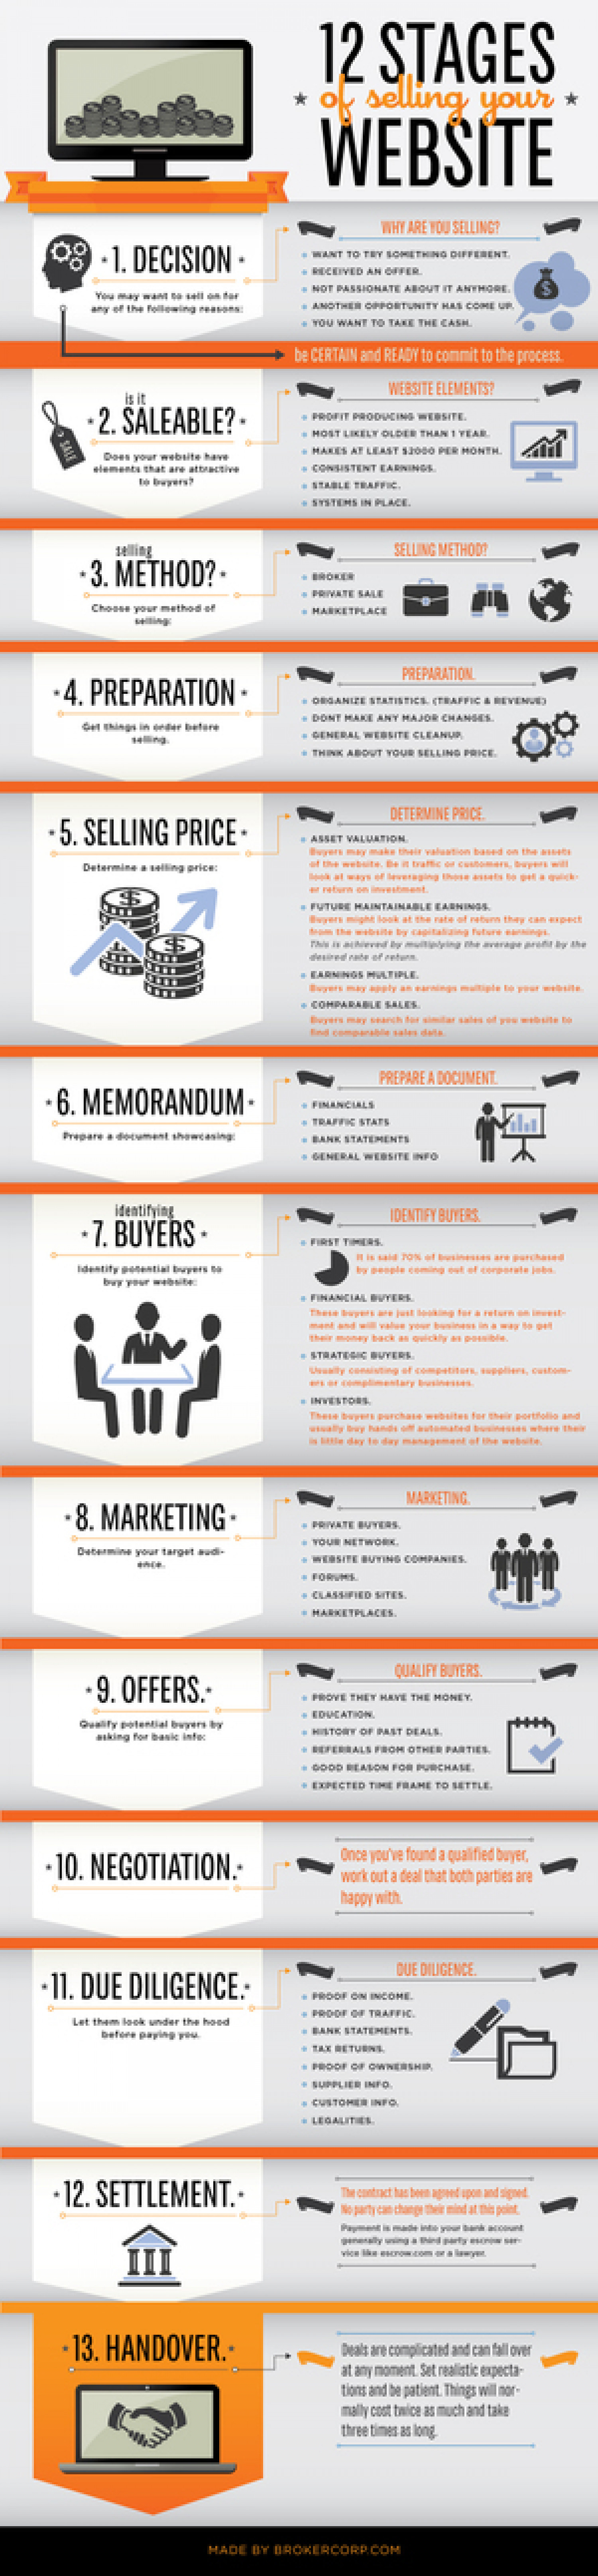 12 Stages of Selling Your Website Infographic